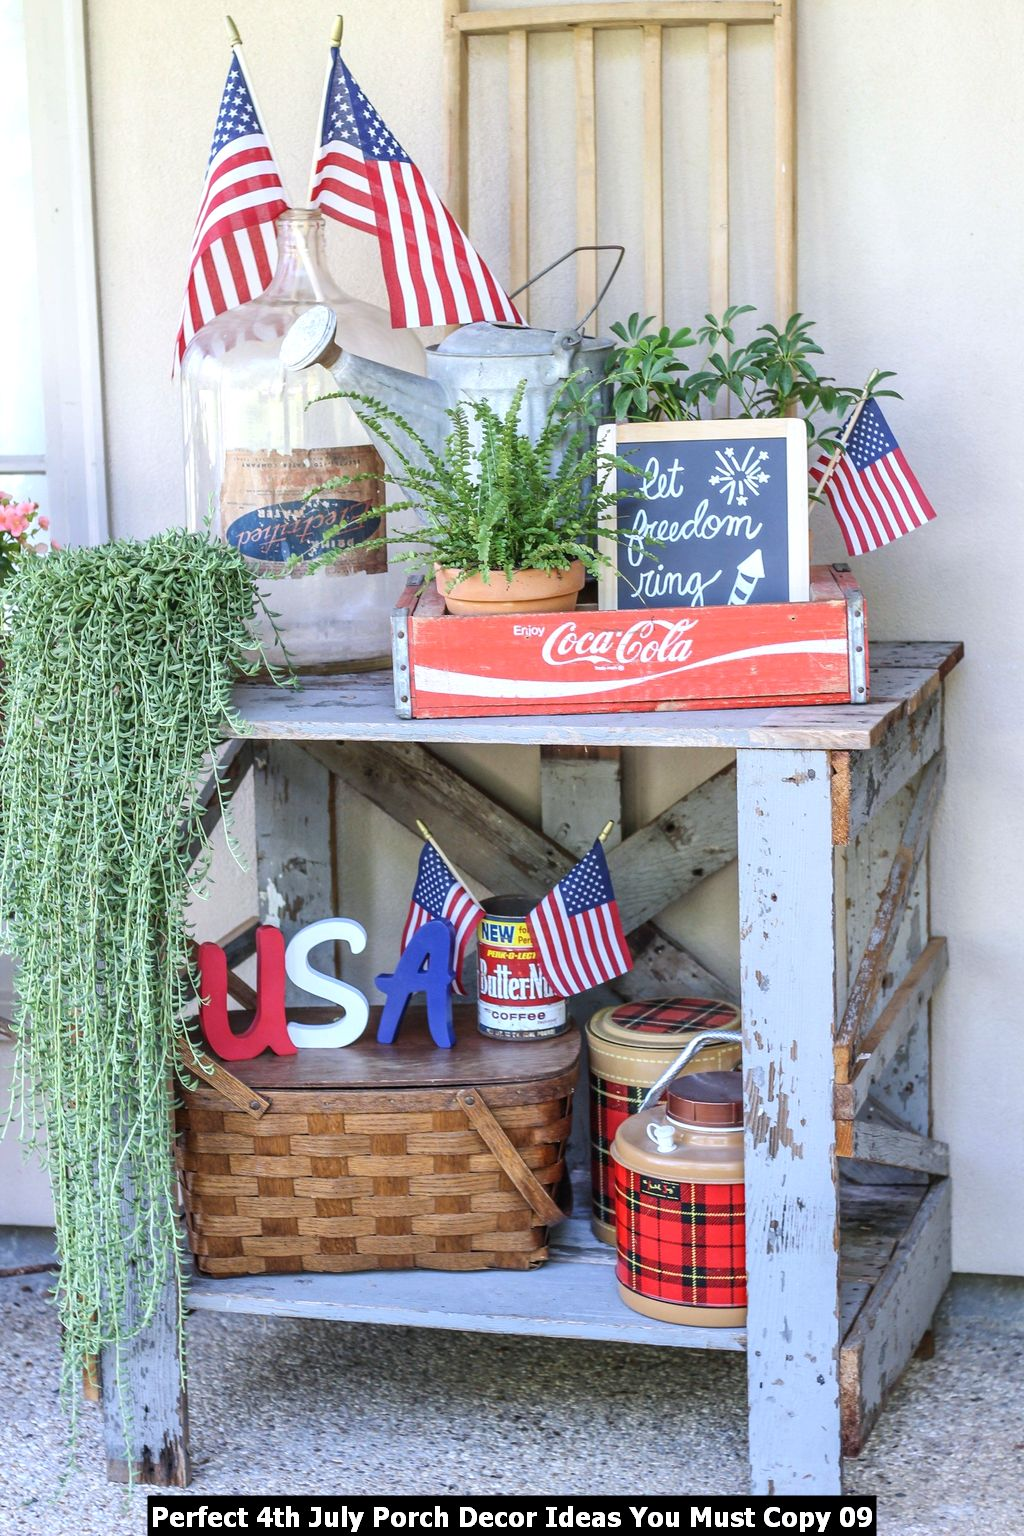 Perfect 4th July Porch Decor Ideas You Must Copy 09